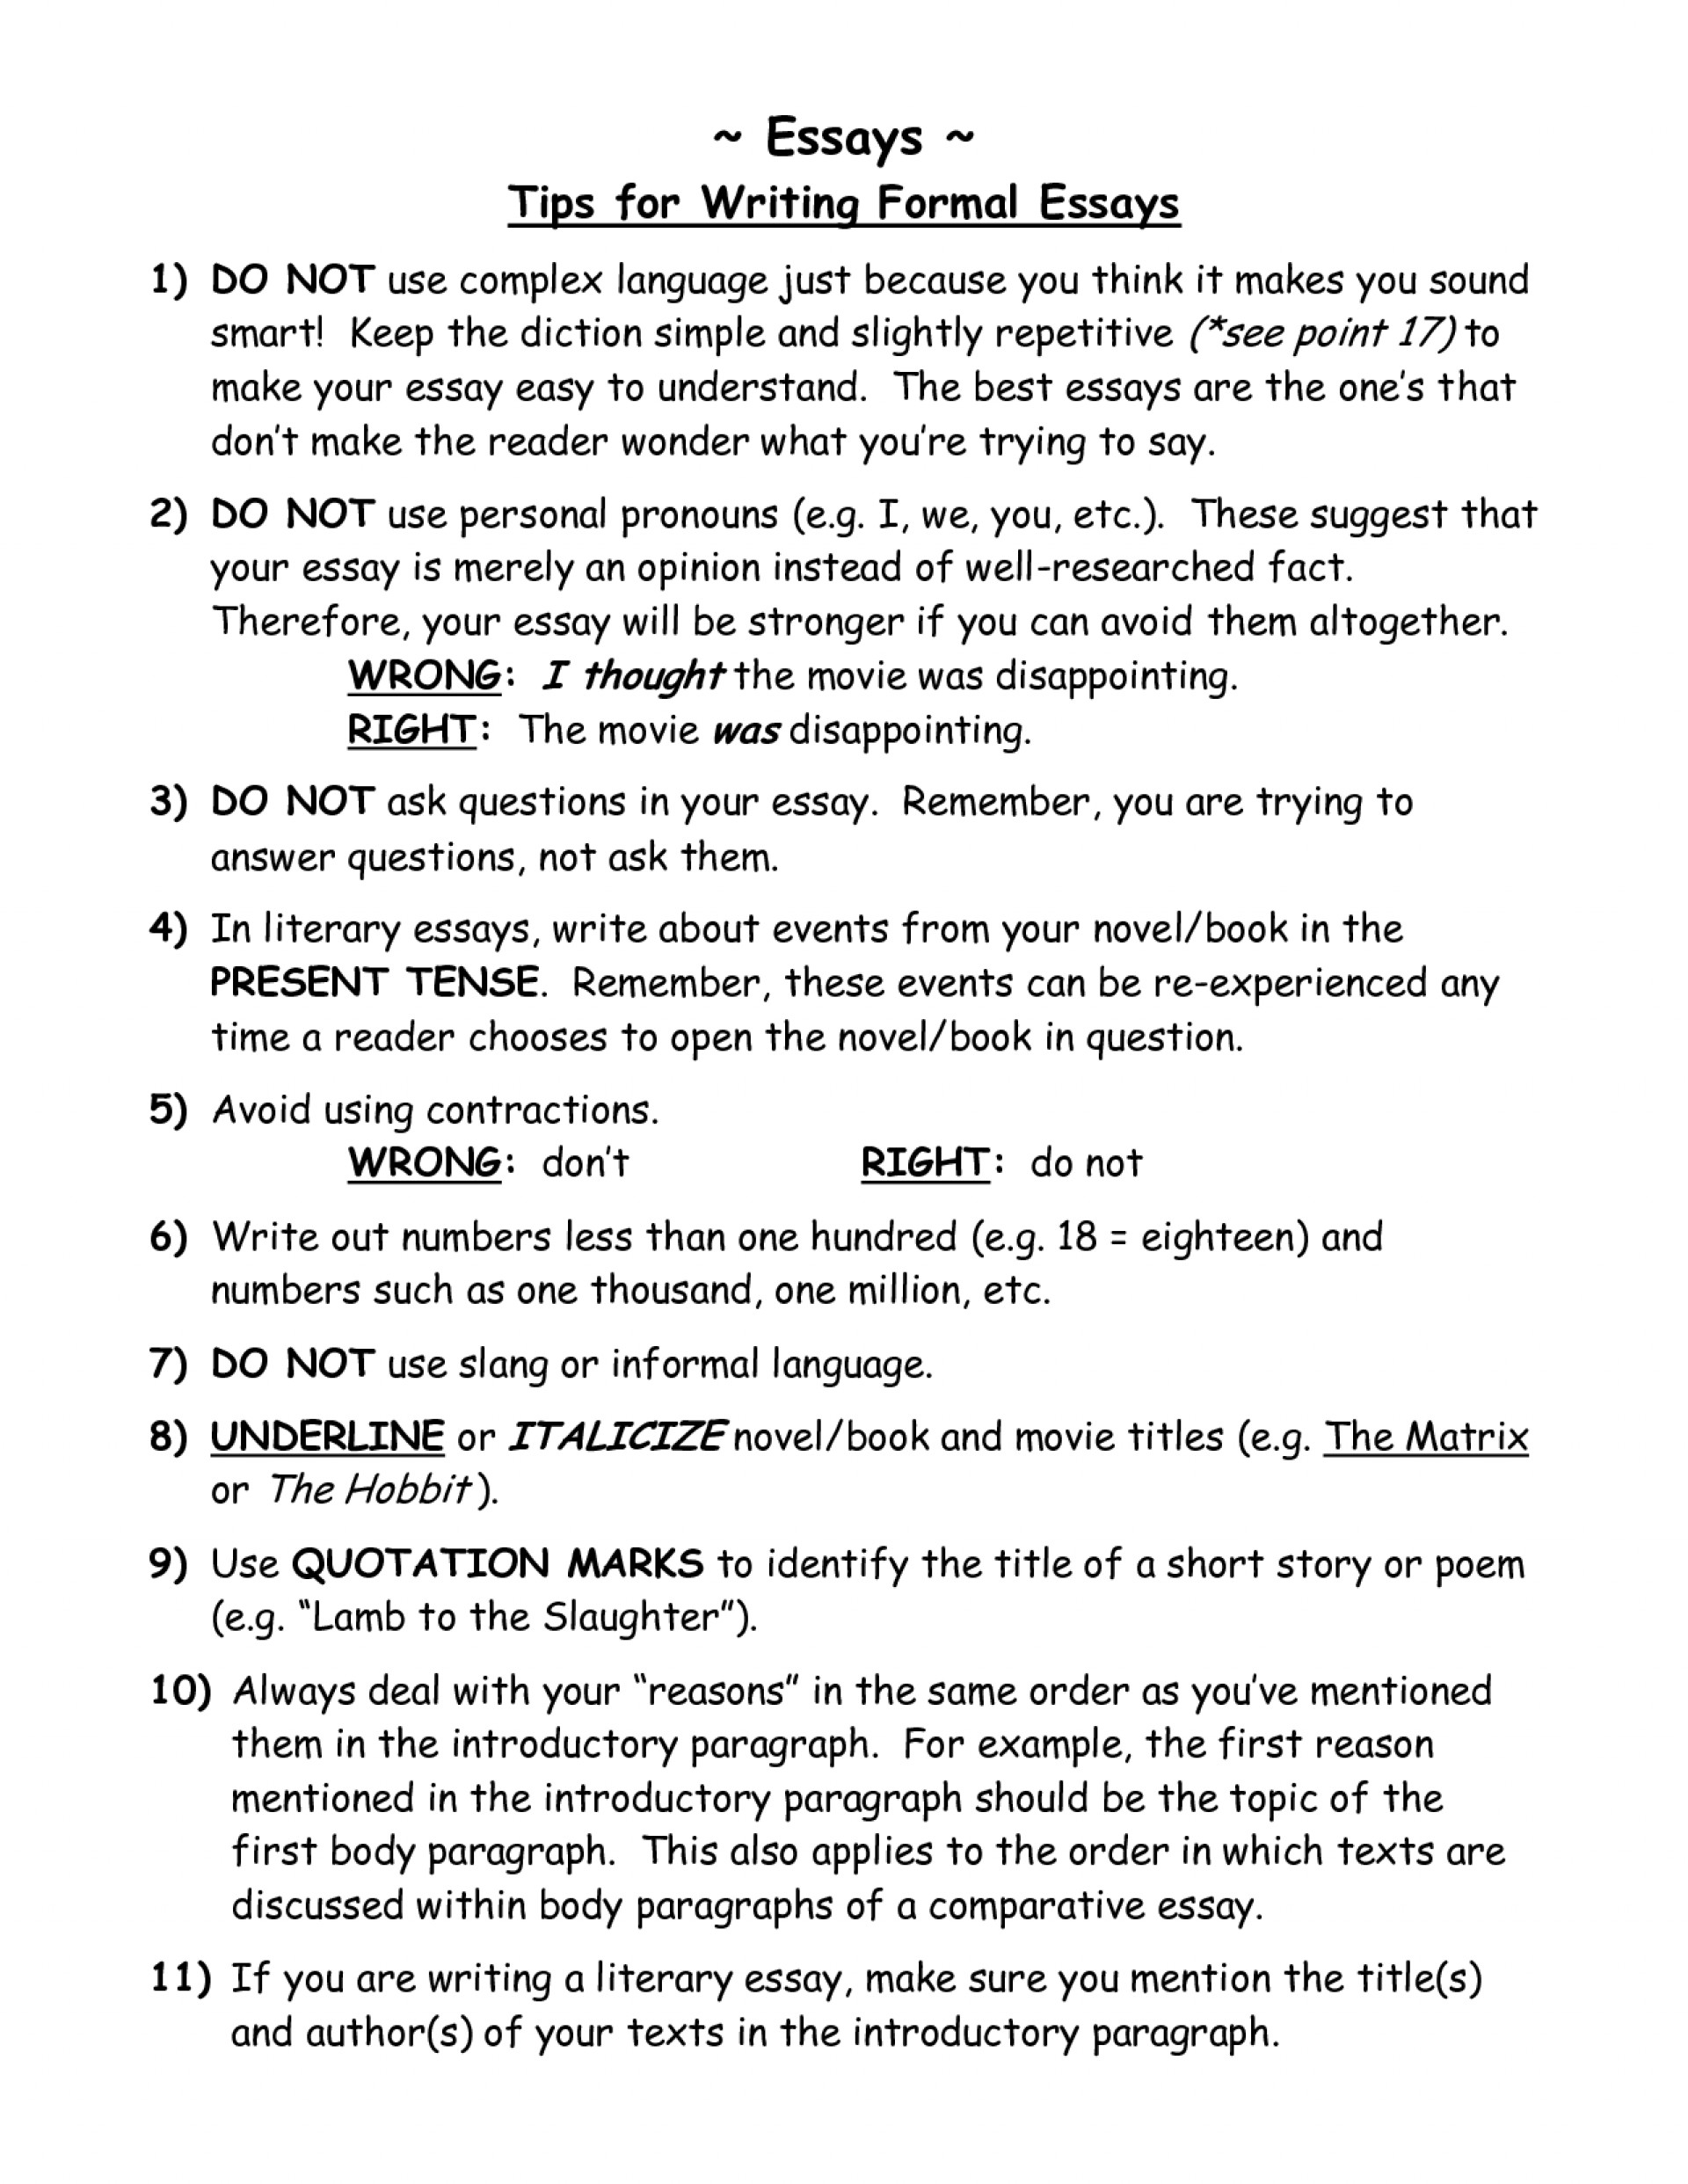 003 How To Write An Effective Essay Example Tips On Writing Essays Goal Blockety Co English Ibcmd Ppt Course Pdf Communication Samples For Ielts In Hindi Staggering A Good Academic Upsc Conclusion 1920